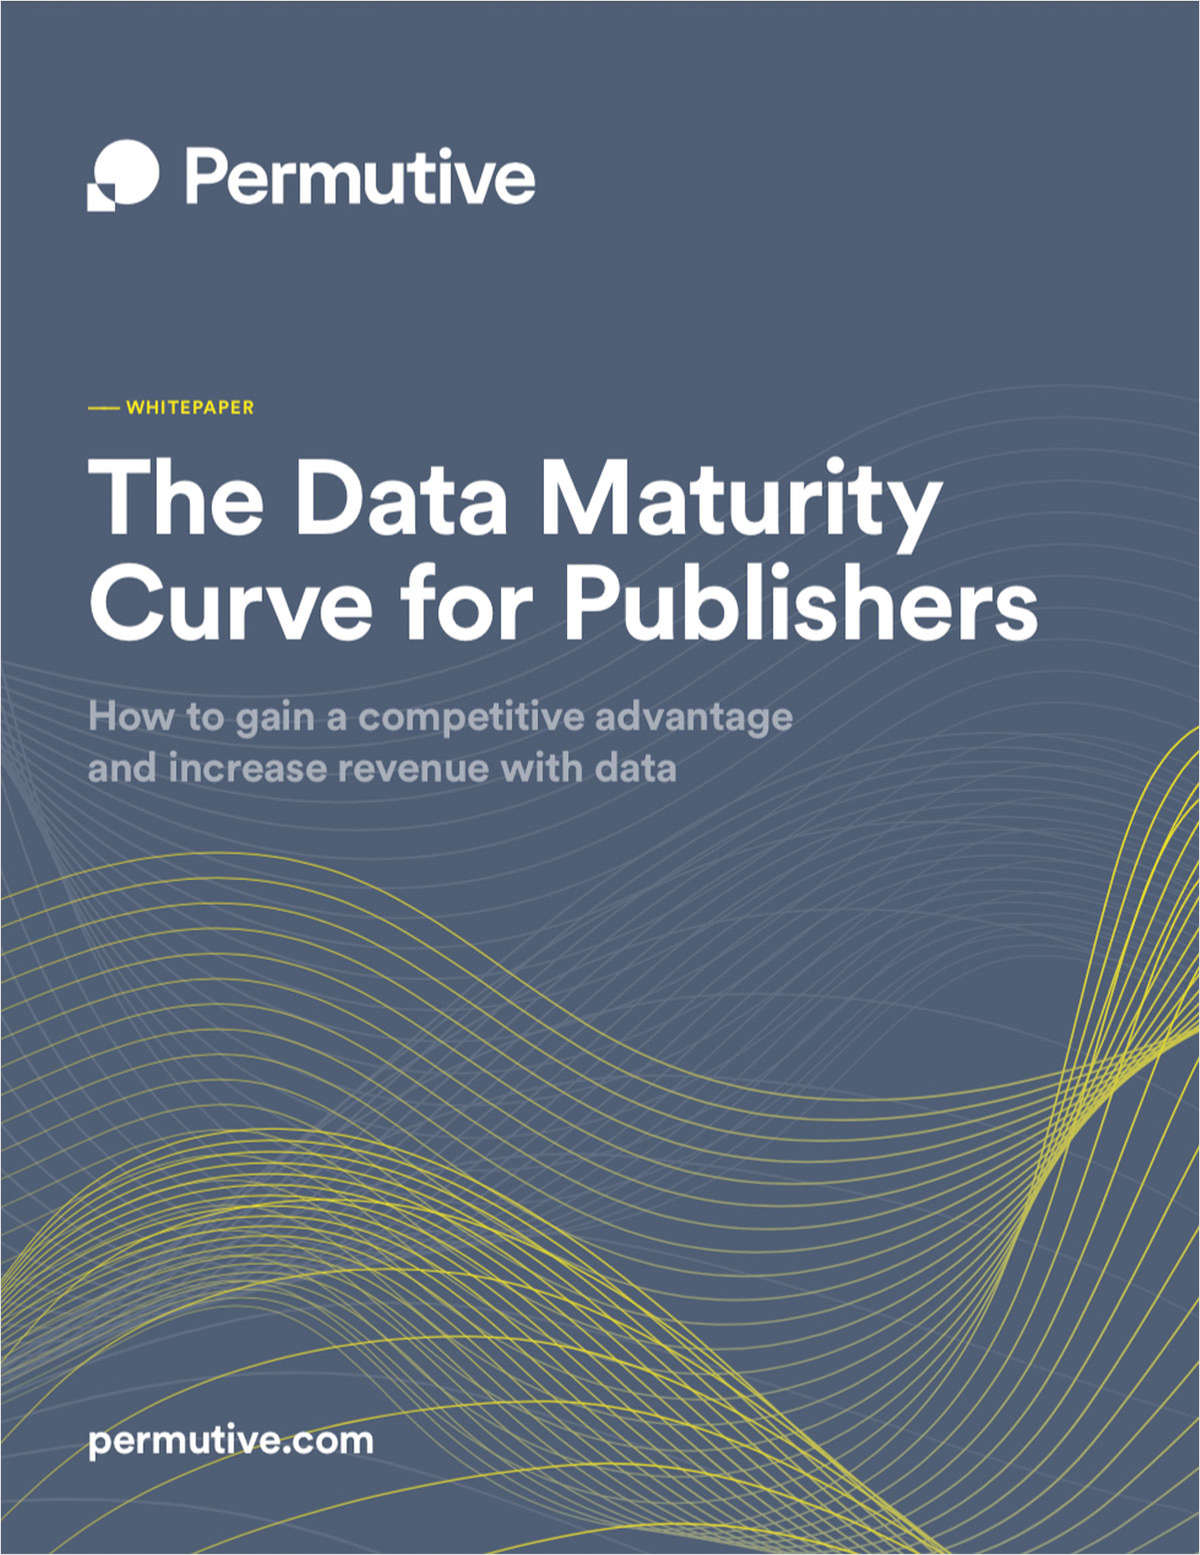 The Data Maturity Curve for Publishers